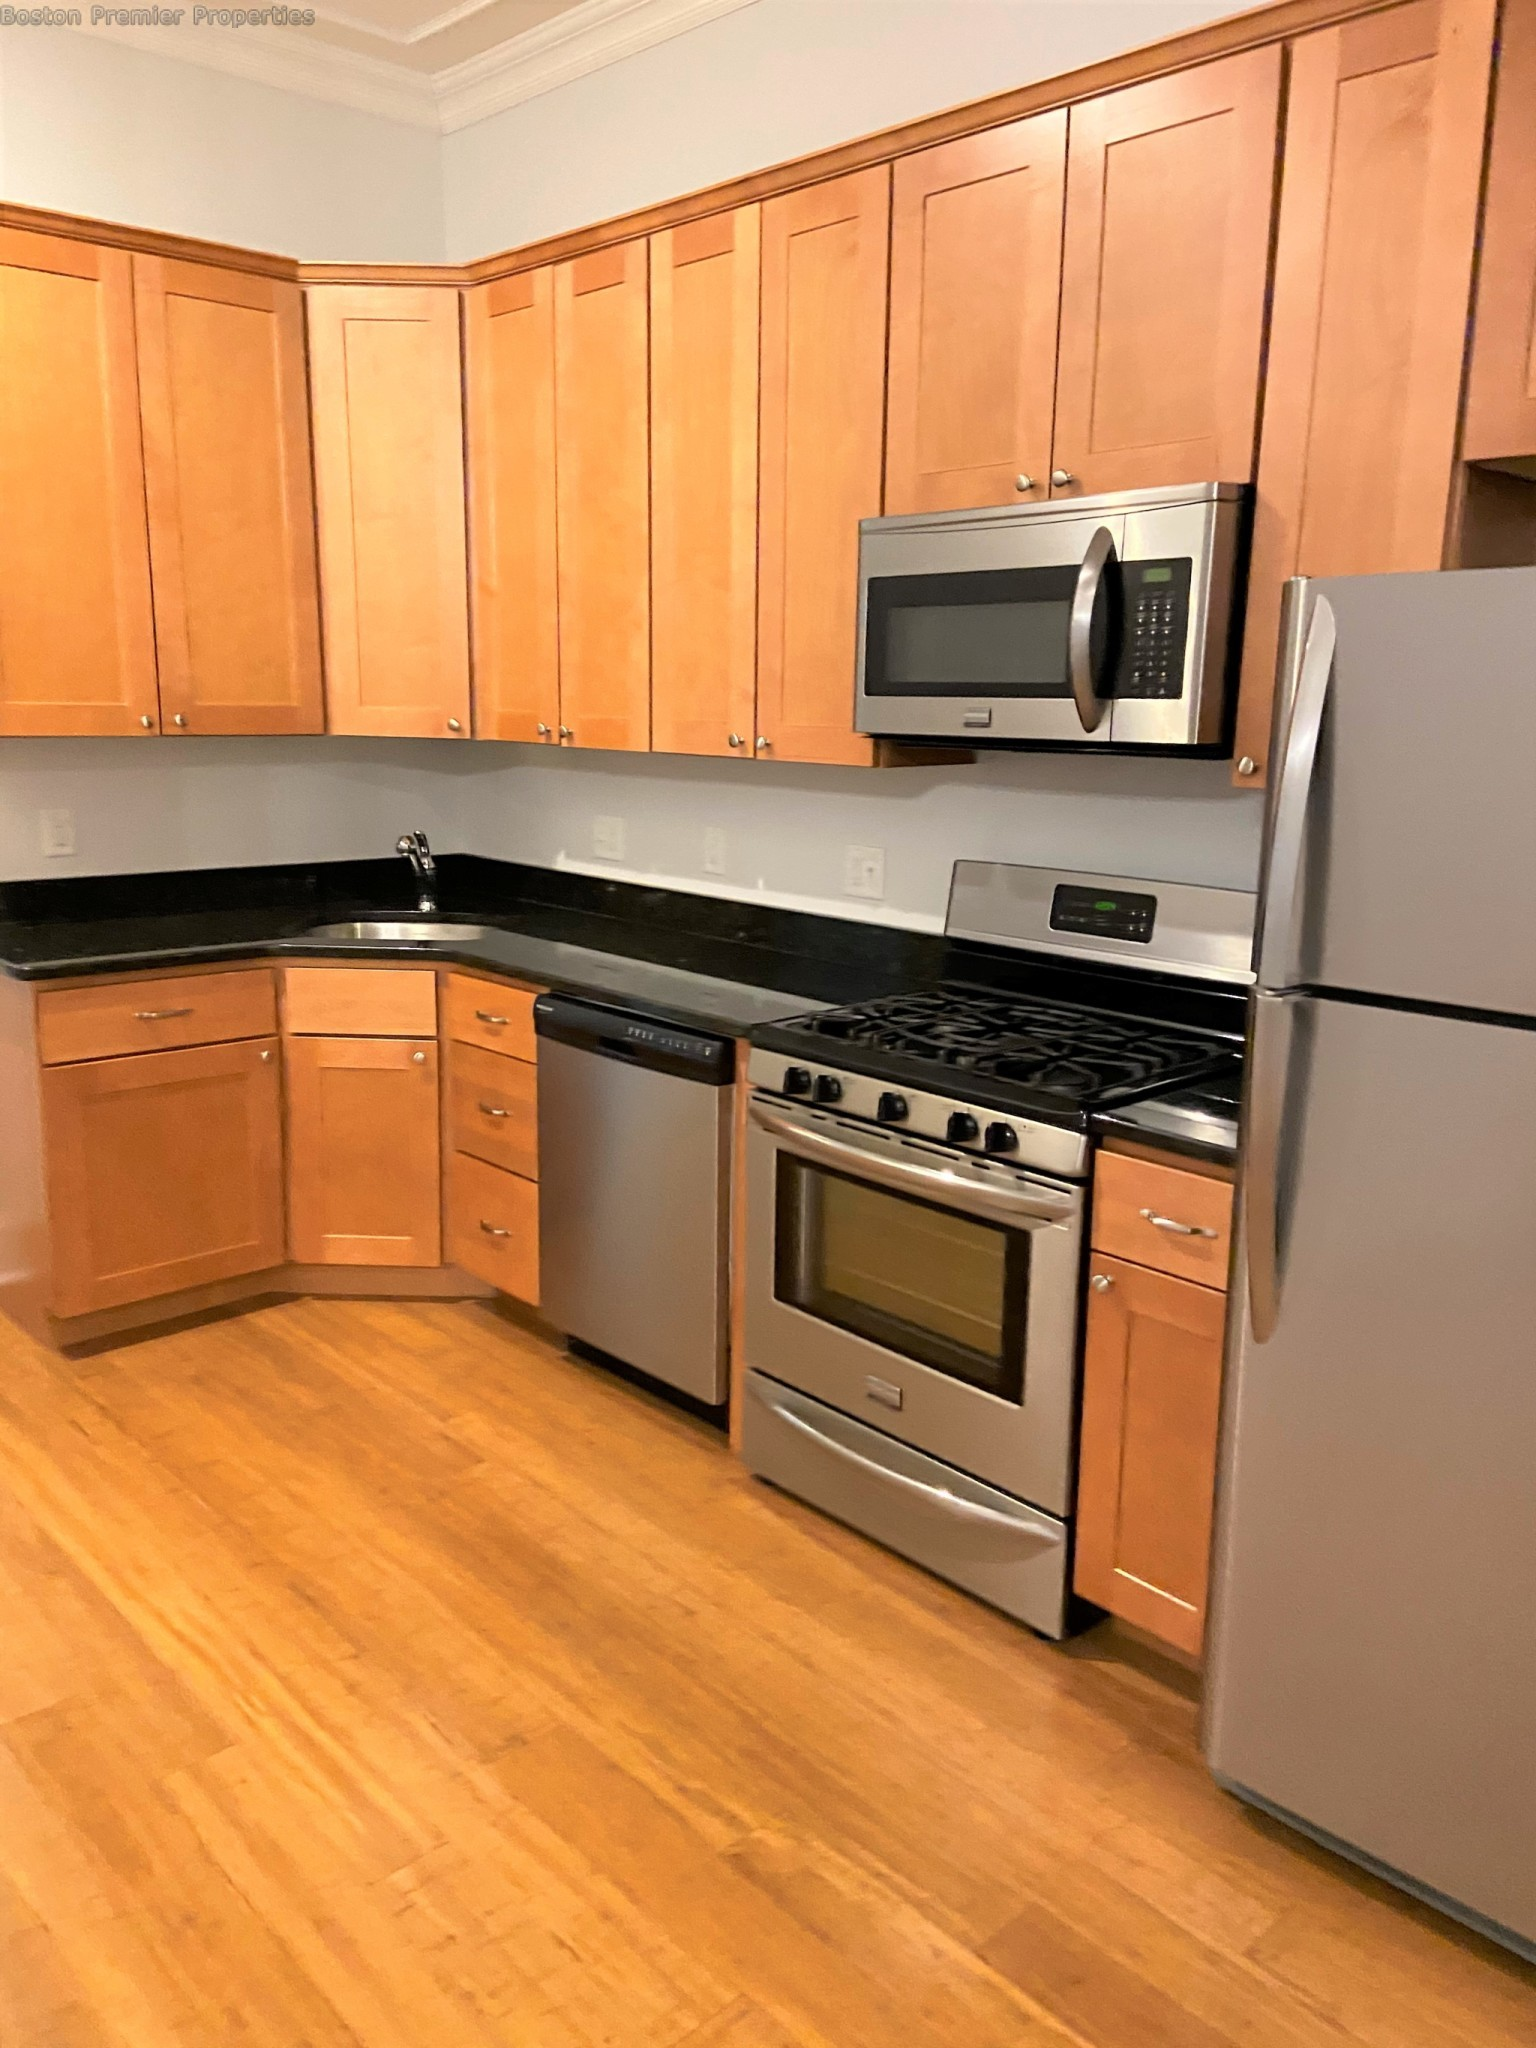 2 Beds, 1 Bath apartment in Boston, South Boston for $3,100